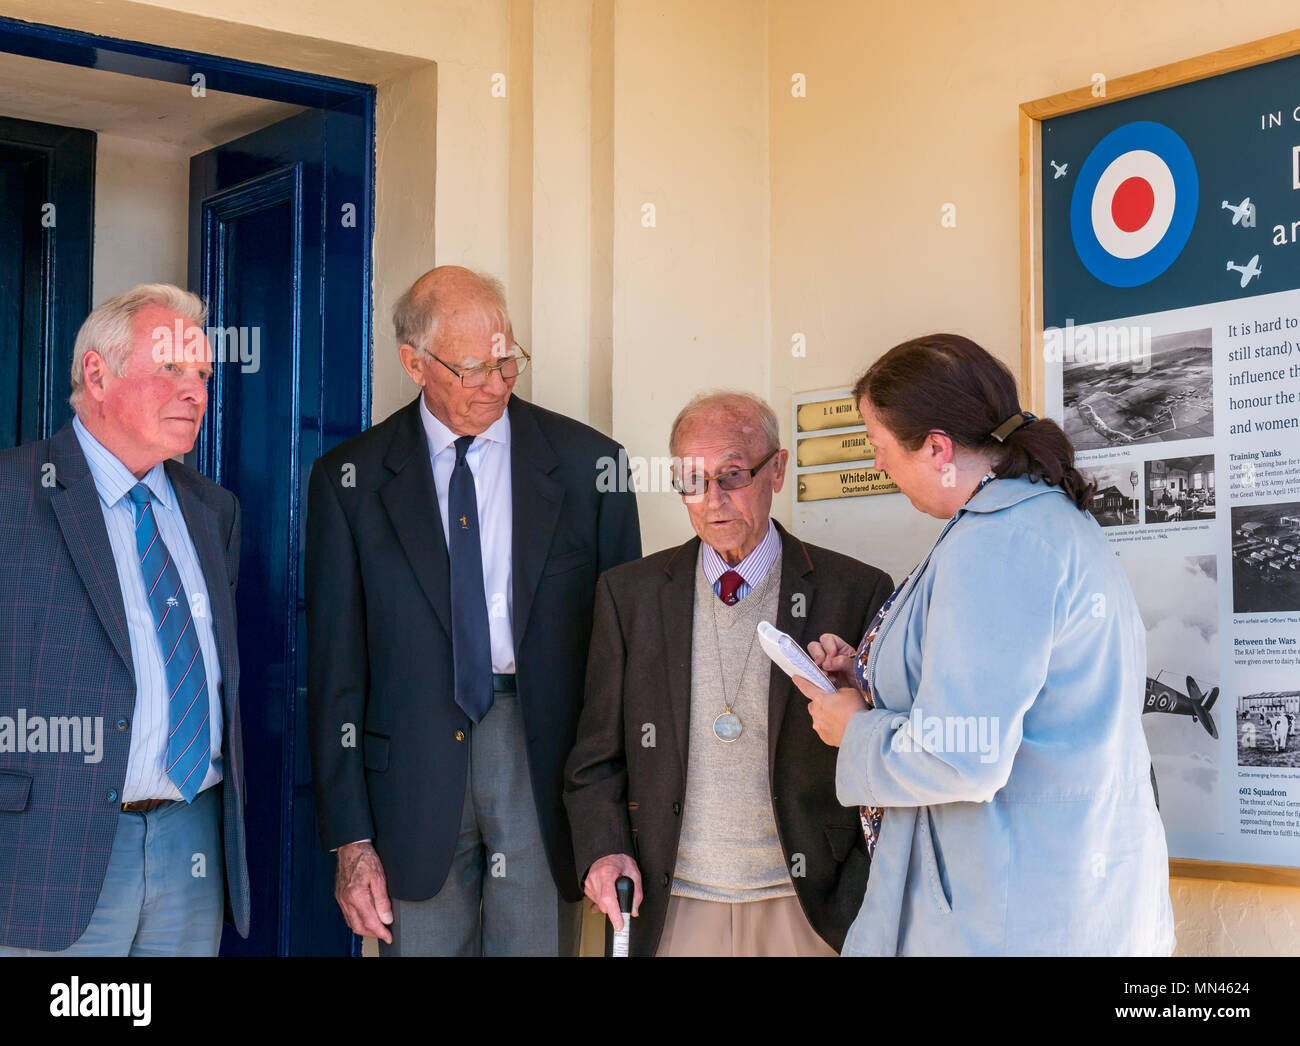 Drem, Scotland, 14 May 2018. Celebrating RAF Drem centenary, Scotland, UK. A plaque unveiled to mark the 100th anniversary. It played an important role in World War II, with  43rd Squadron stationed here. Gordon Mills, aged 96, who was stationed here during World War II unveiled the information board. The airfield is famed for inventing the Drem lighting system, aiding spitfires to land at night, which was adopted by all RAF stations. Remaining buildings are now Fenton Barns retail village. The war veteran being interviewed by the local paper, the East Lothian Courier - Stock Image